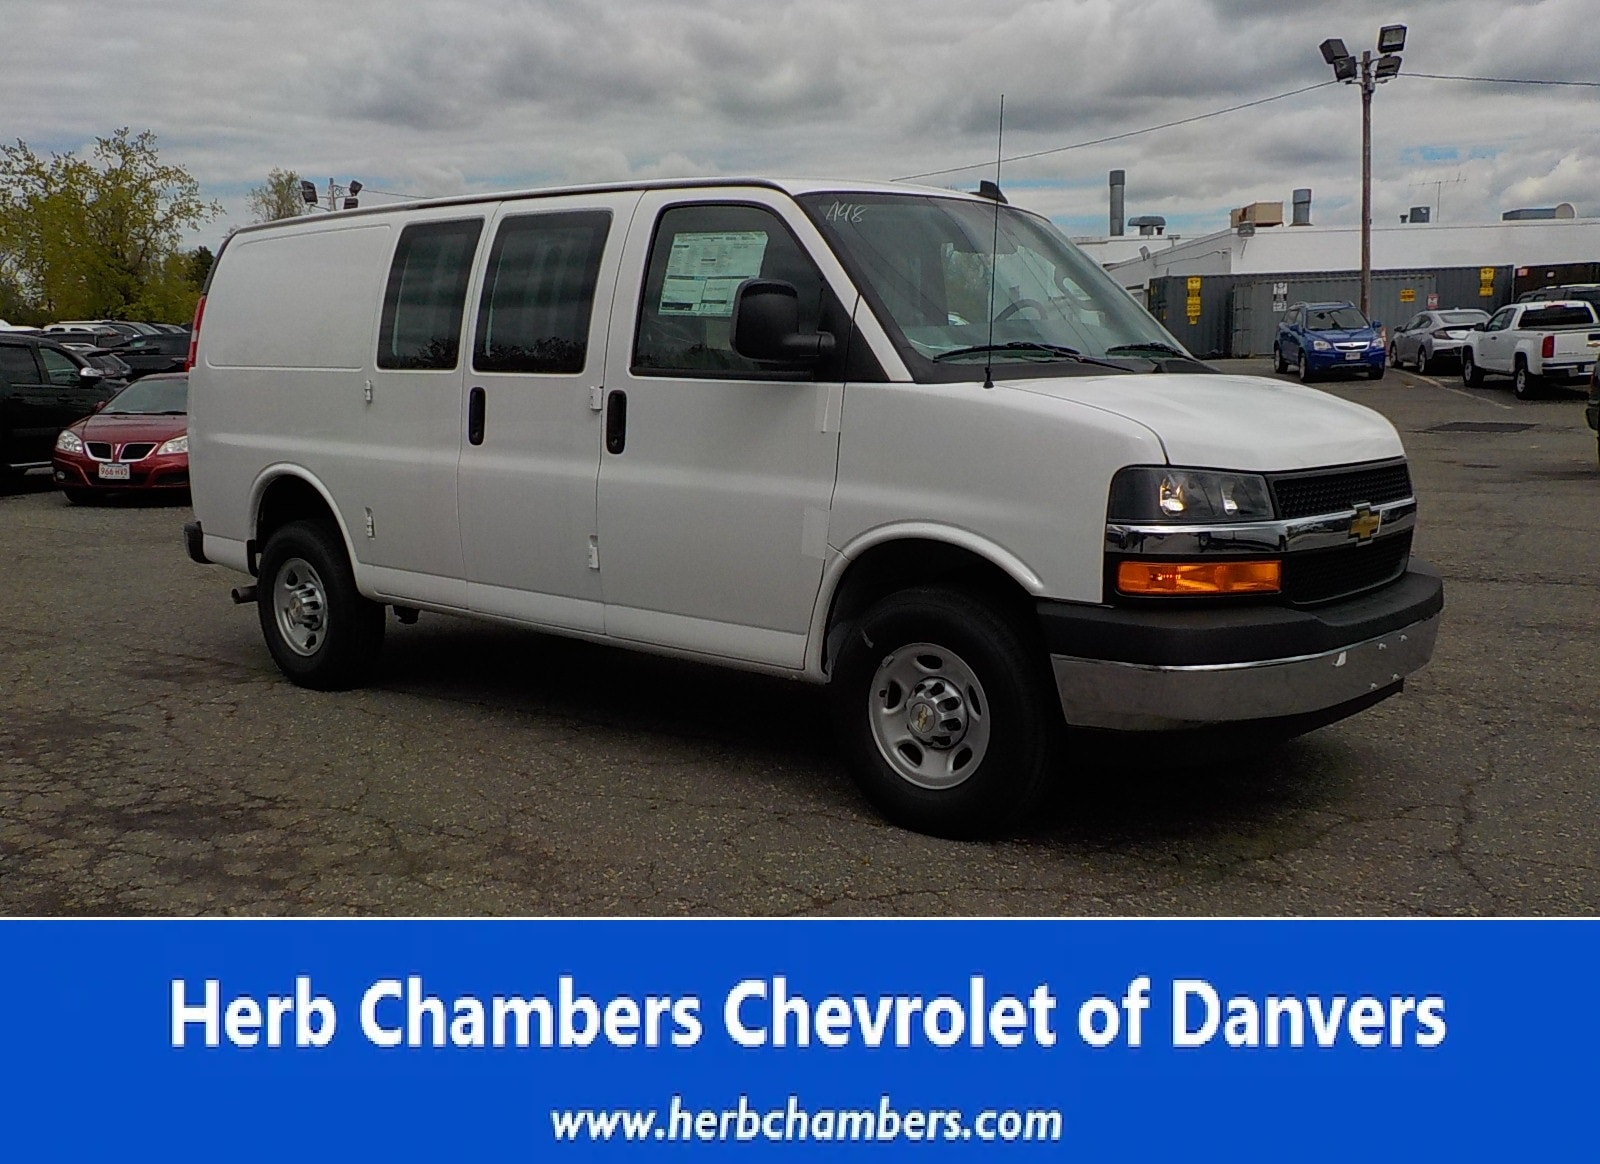 Herb Chambers Chevrolet >> 2019 Chevrolet Express 2500 For Sale In Danvers Ma Herb Chambers